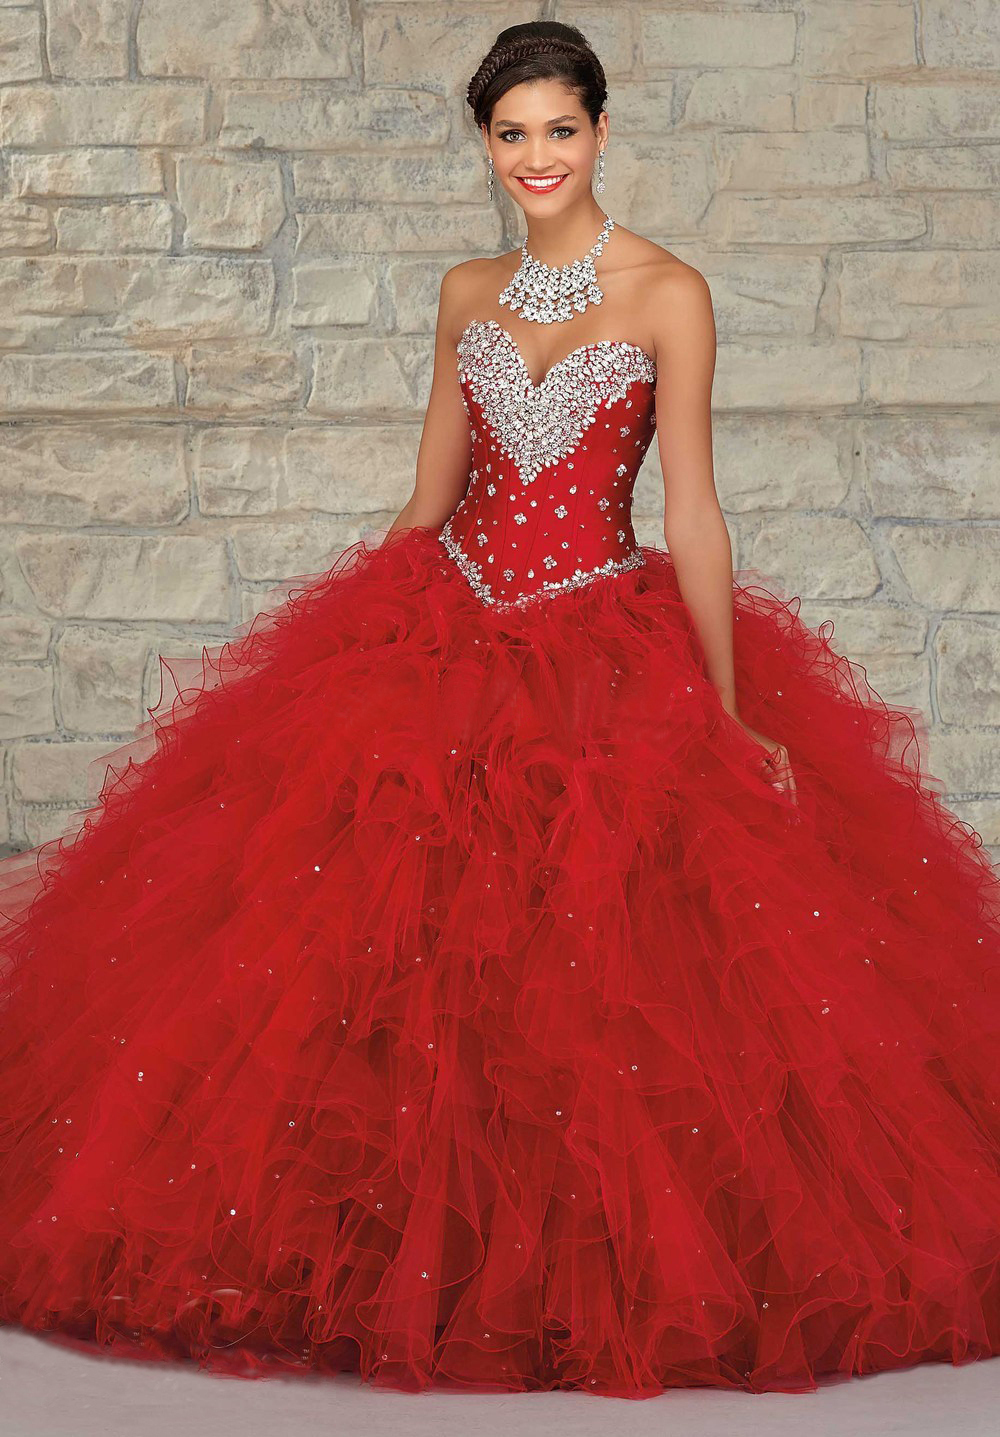 New-Style-Turquoise-Quinceanera-Dresses-With-Jacket-2015-Ball-Gown-Ruffled-Debutante-Dress-For-15-Years (2).jpg